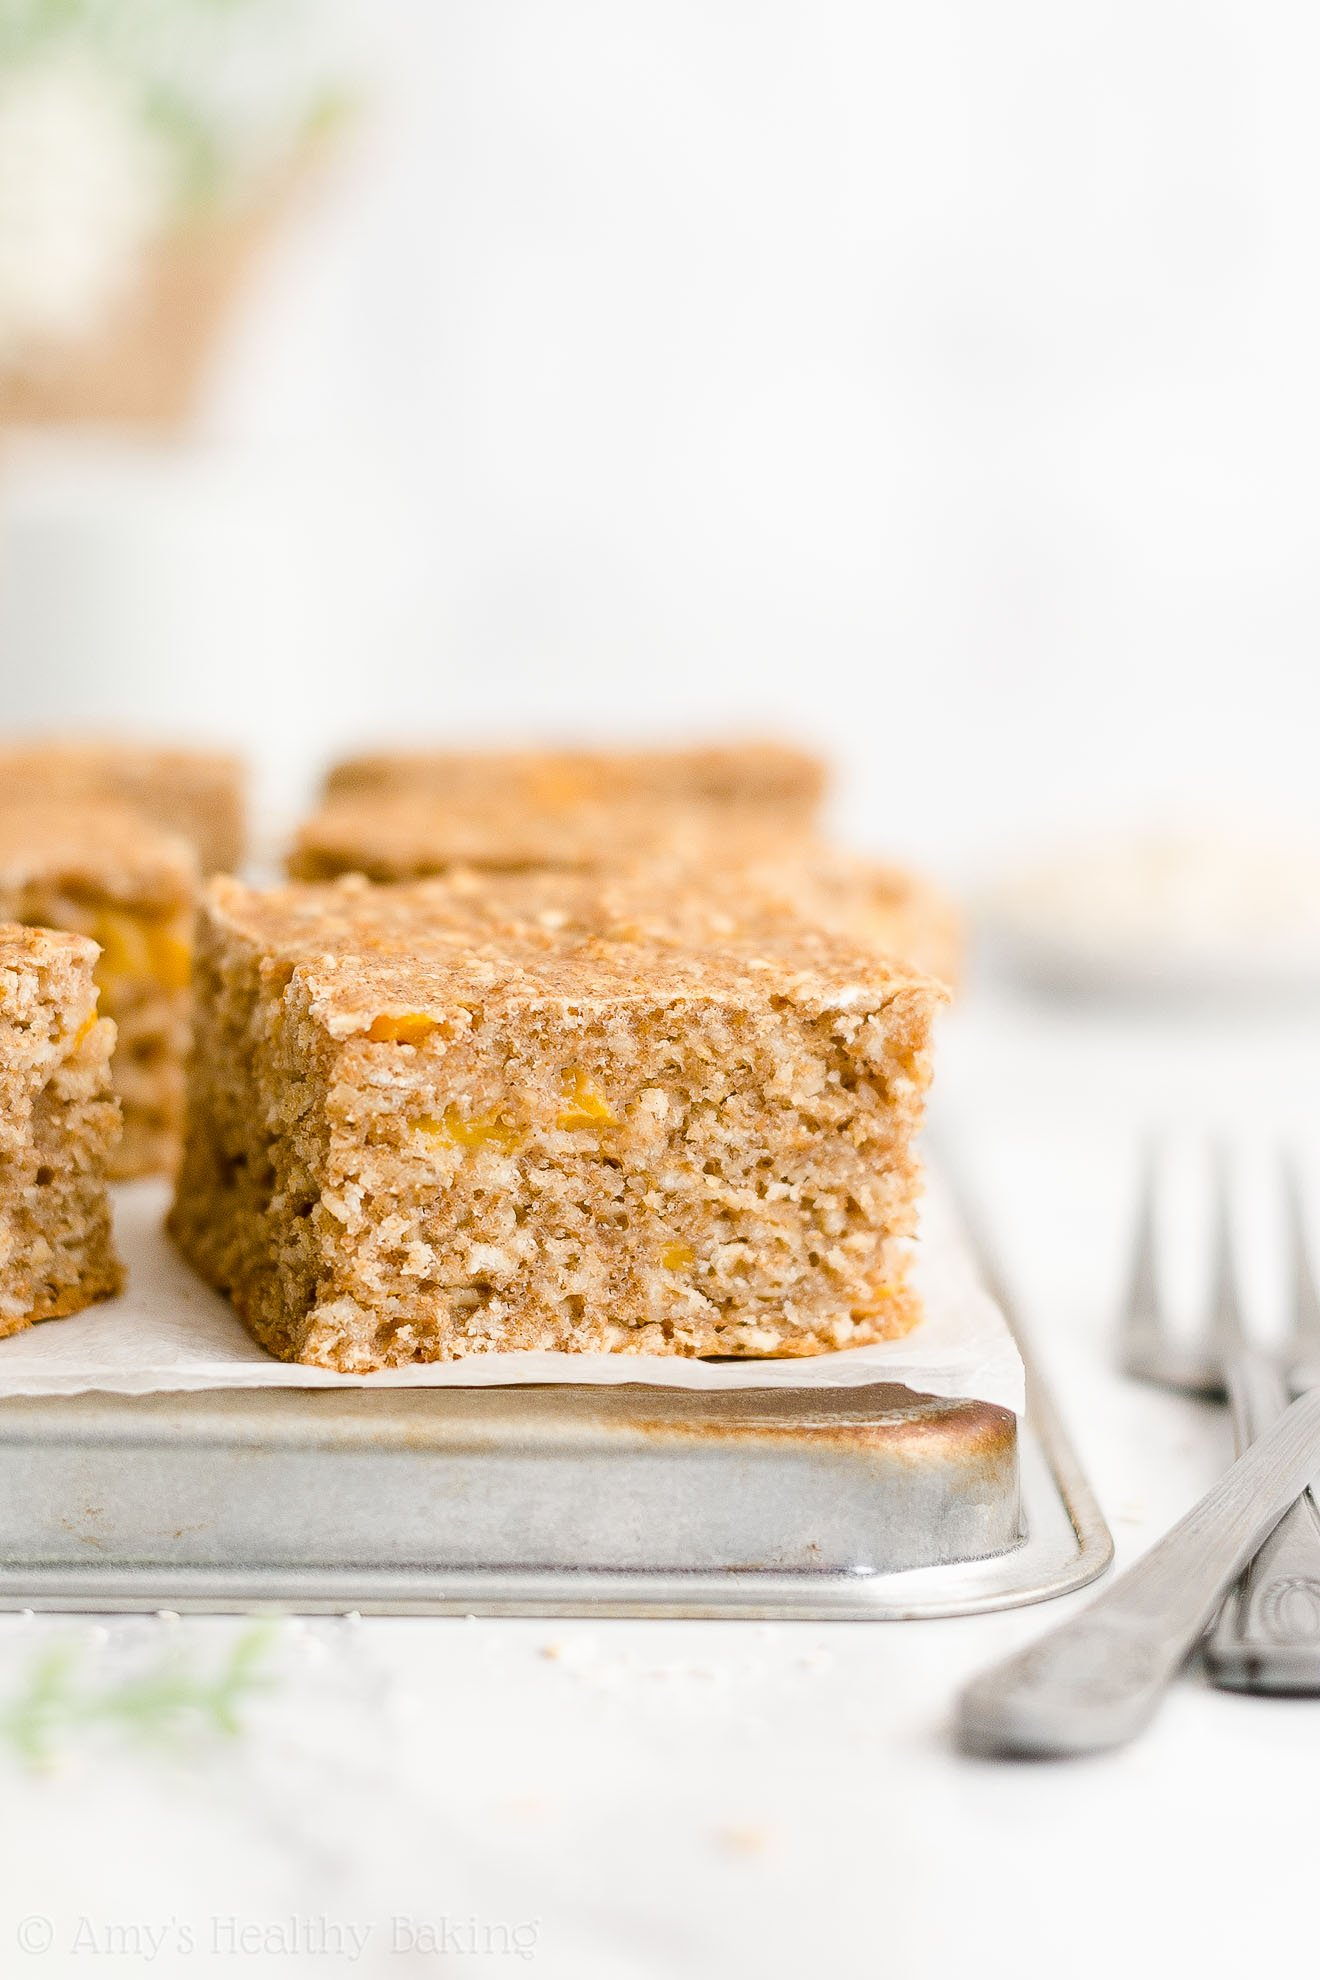 Best Easy Healthy Whole Wheat Low Sugar Canned Peach Oatmeal Breakfast Cake